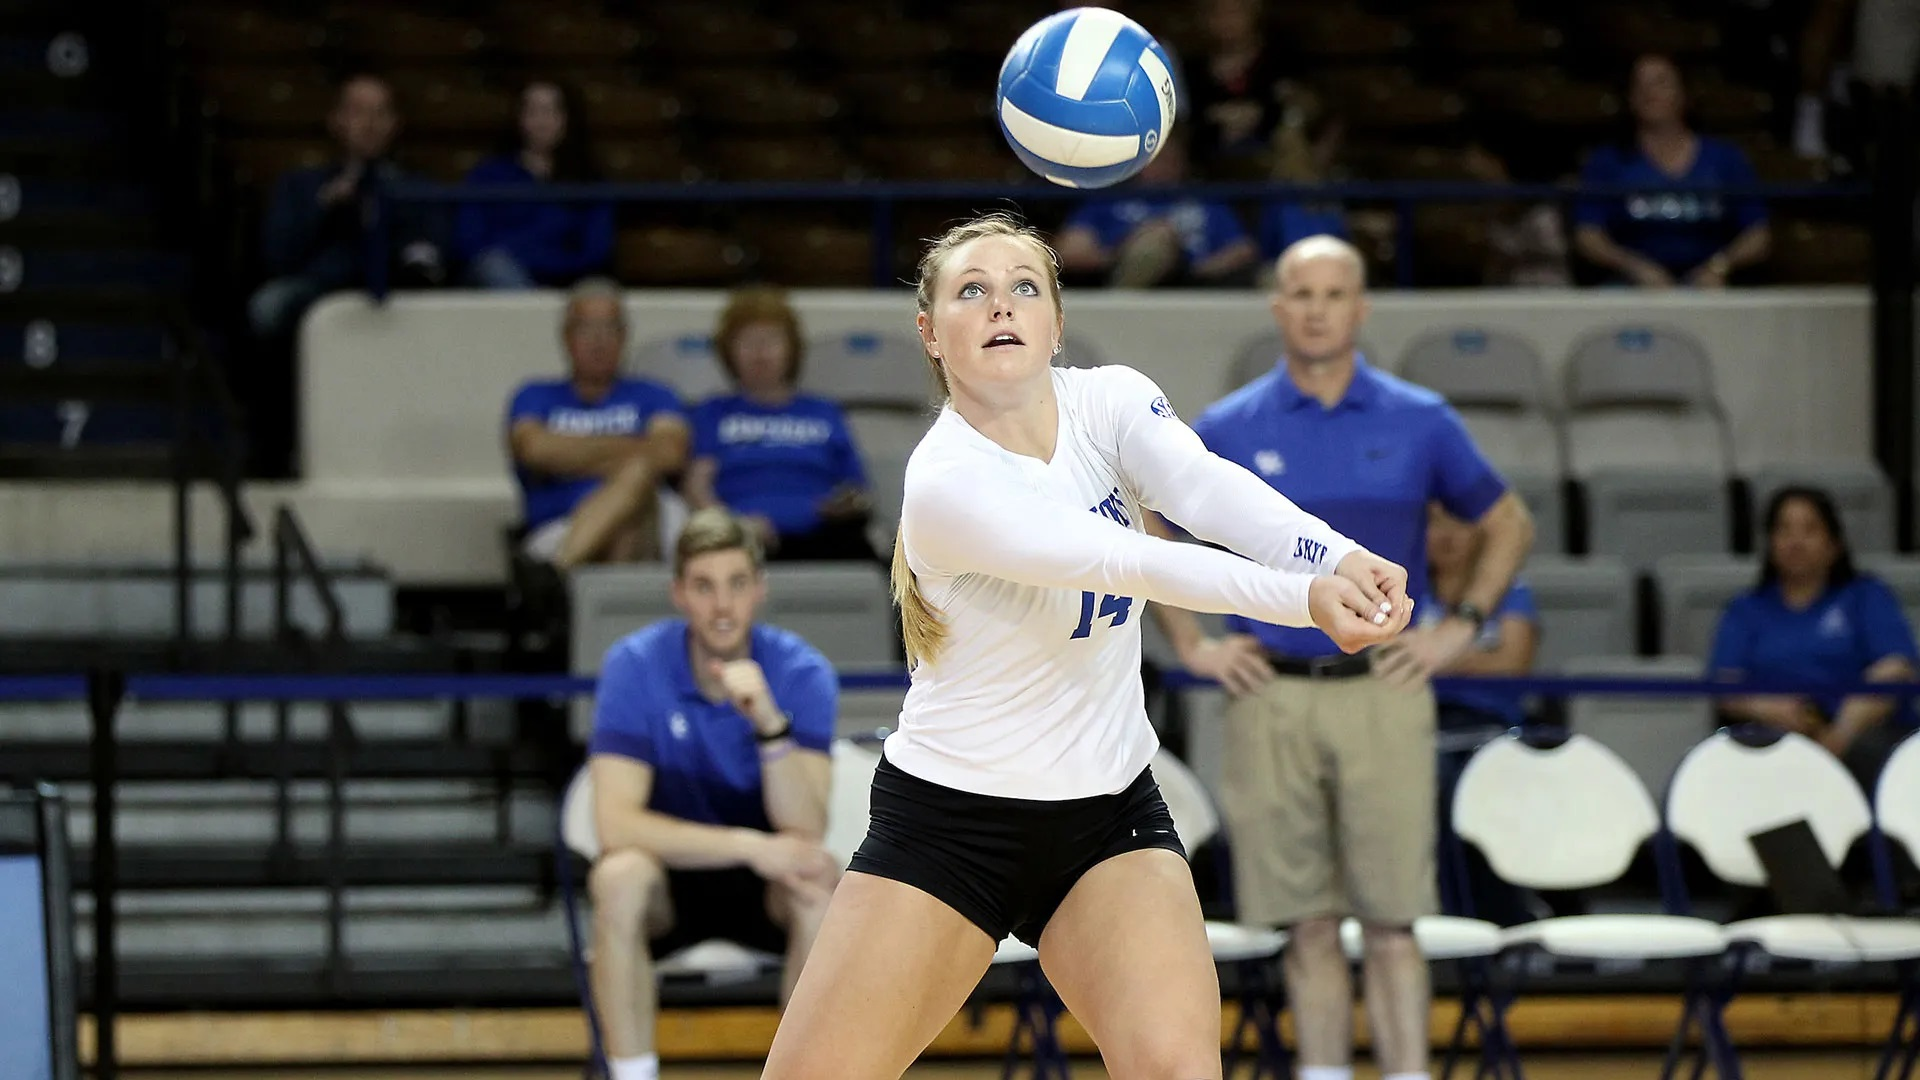 Harper Hempel played for the women's volleyball team from 2015 to 2017 for University of Kentucky